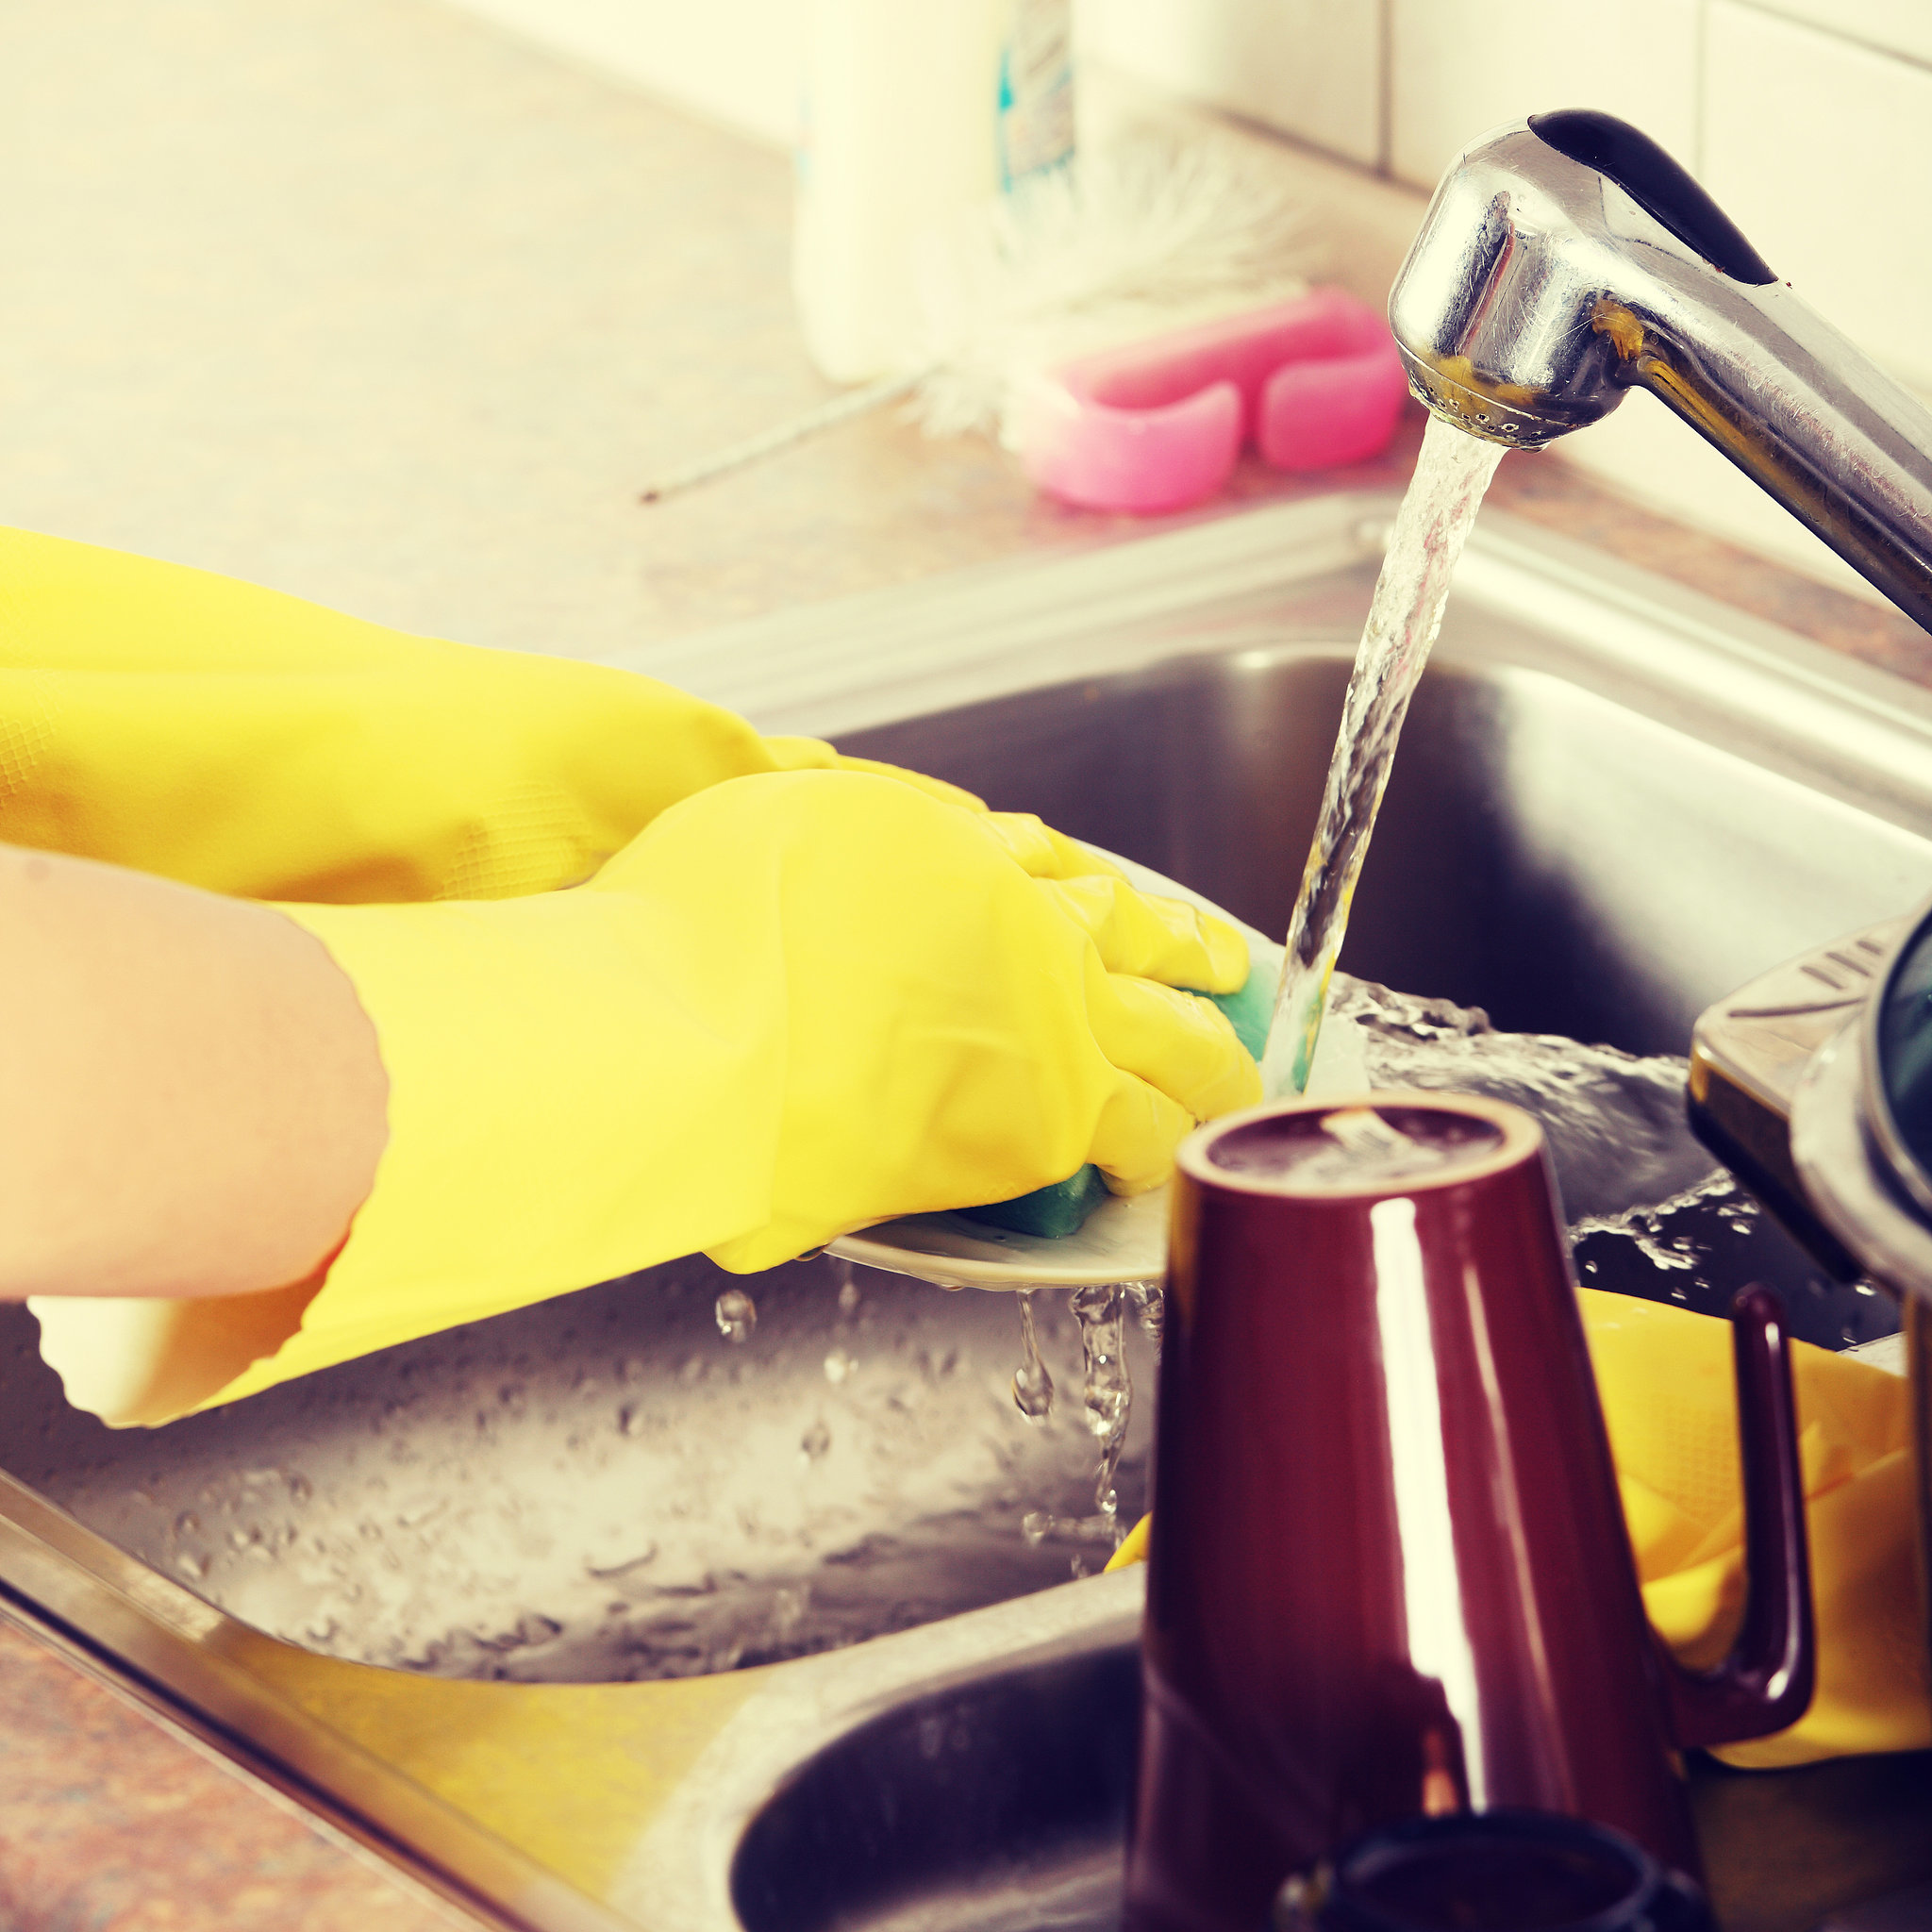 how to clean your kitchen fast